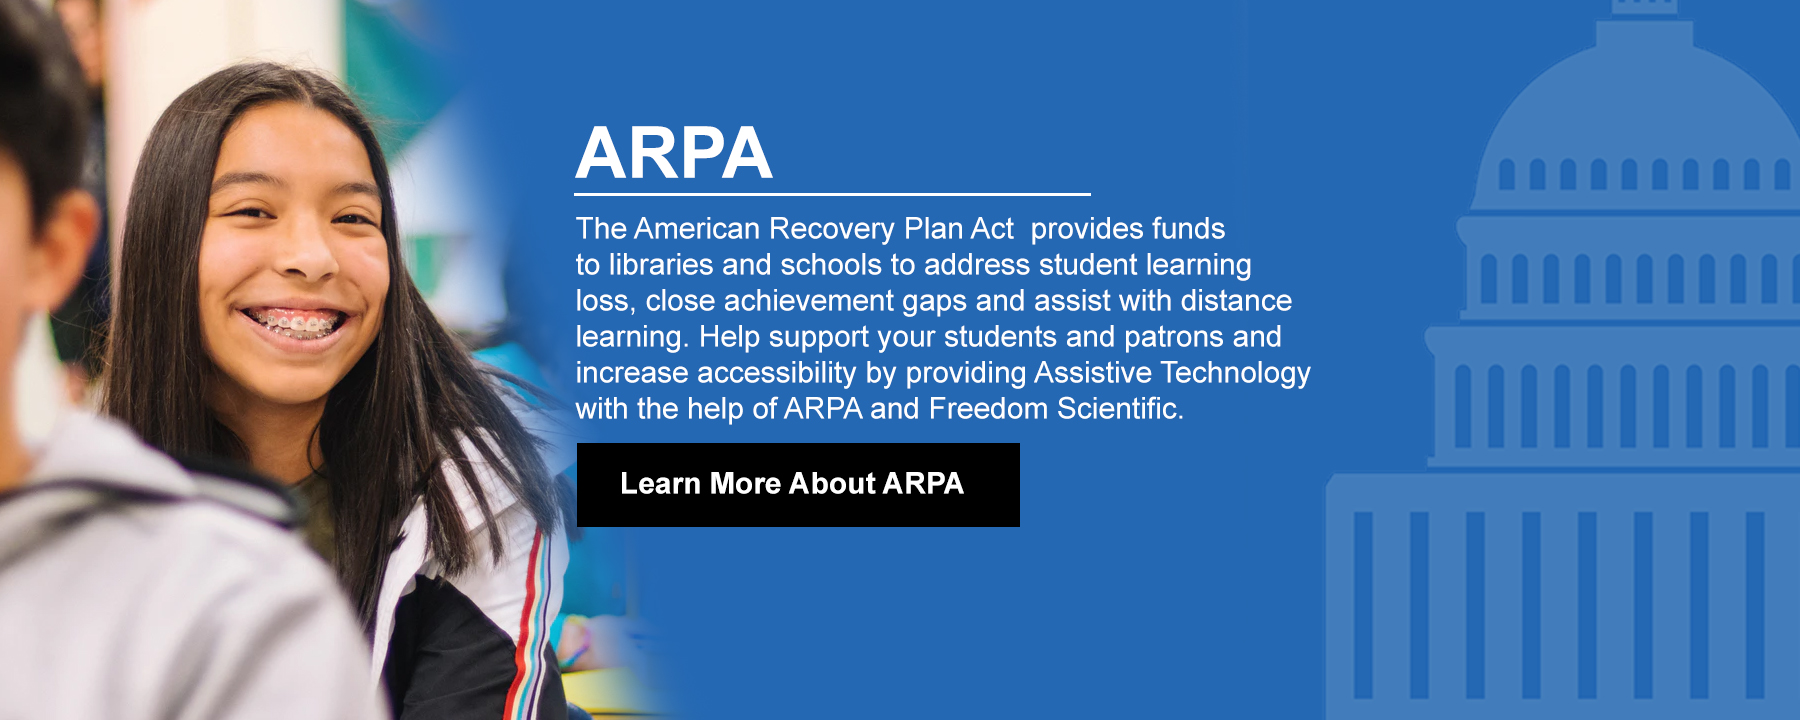 The American Recovery Plan Act  provides funds to libraries and schools to address student learning loss, close achievement gaps and assist with distance learning. Help support your students and patrons and increase accessibility by providing Assistive Technology with the help of ARPA and Freedom Scientific.